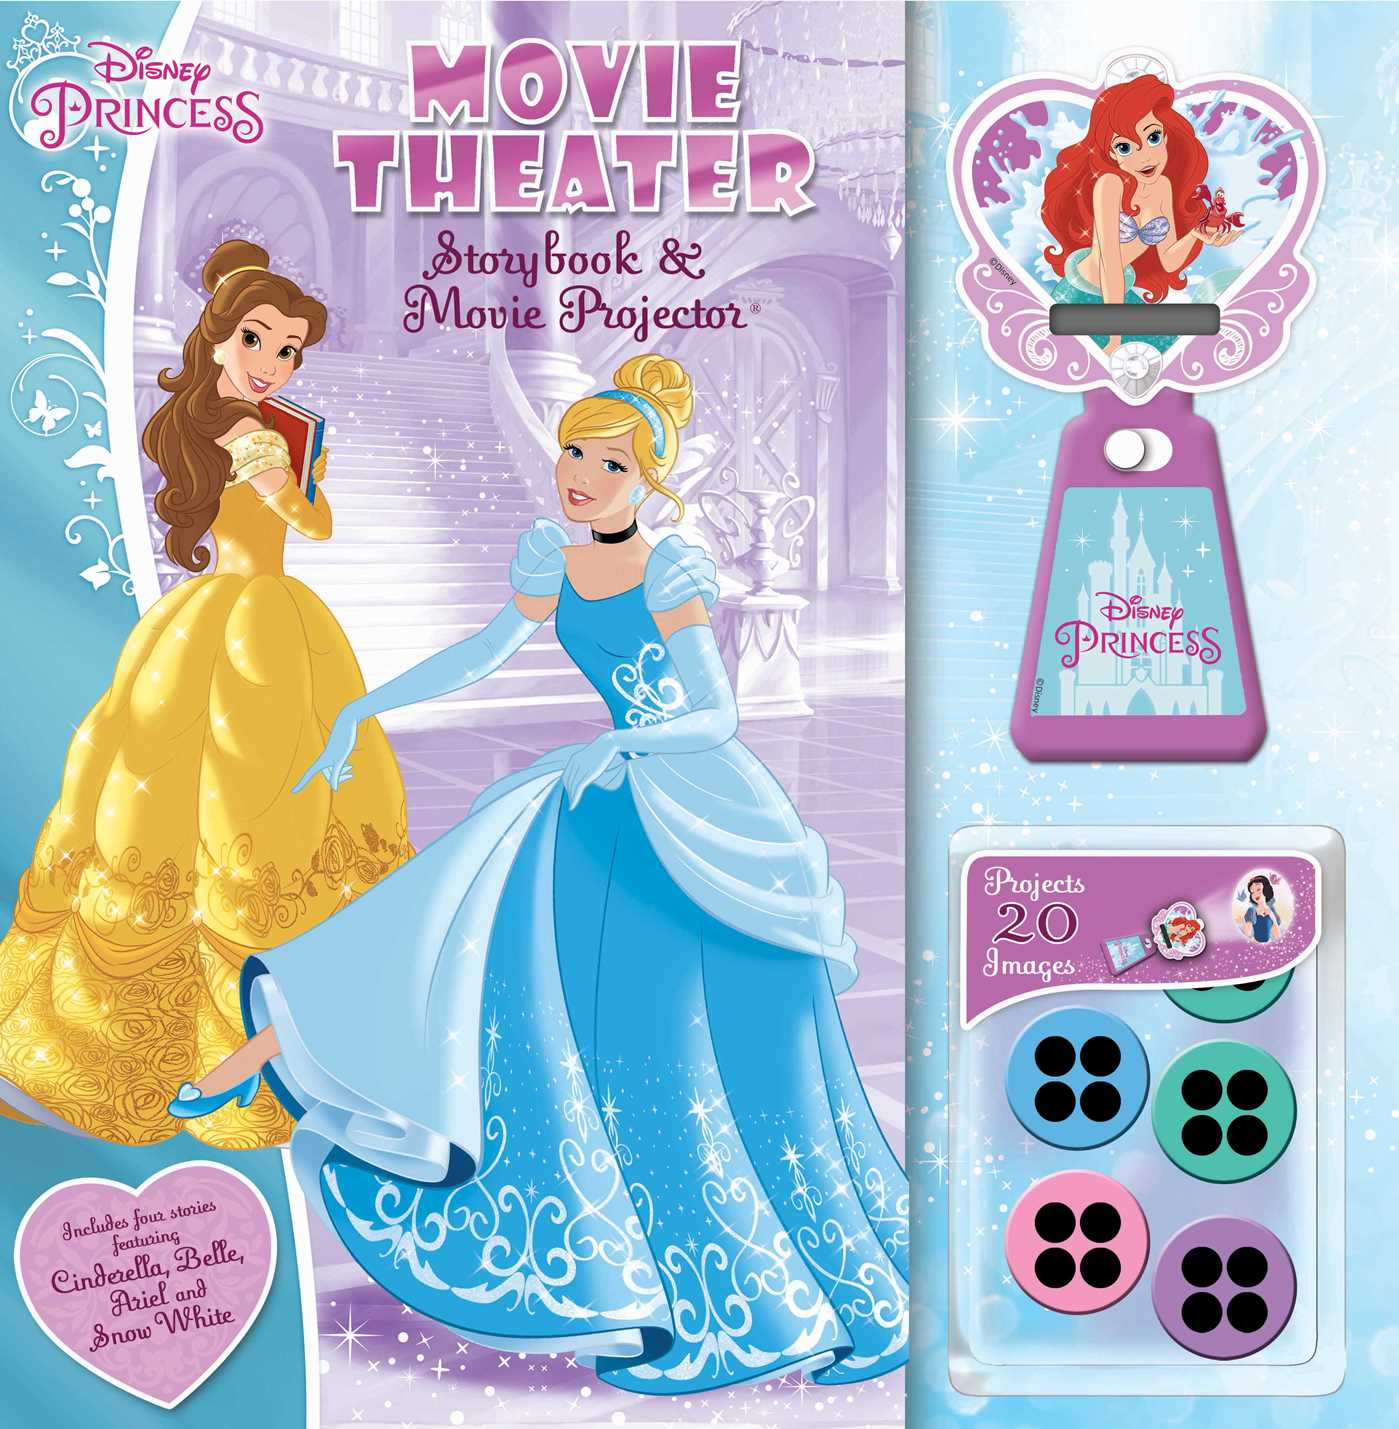 Disney princess movie theater storybook movie projector book by disney princess movie theater storybook movie projector 9780794442156 hr altavistaventures Image collections